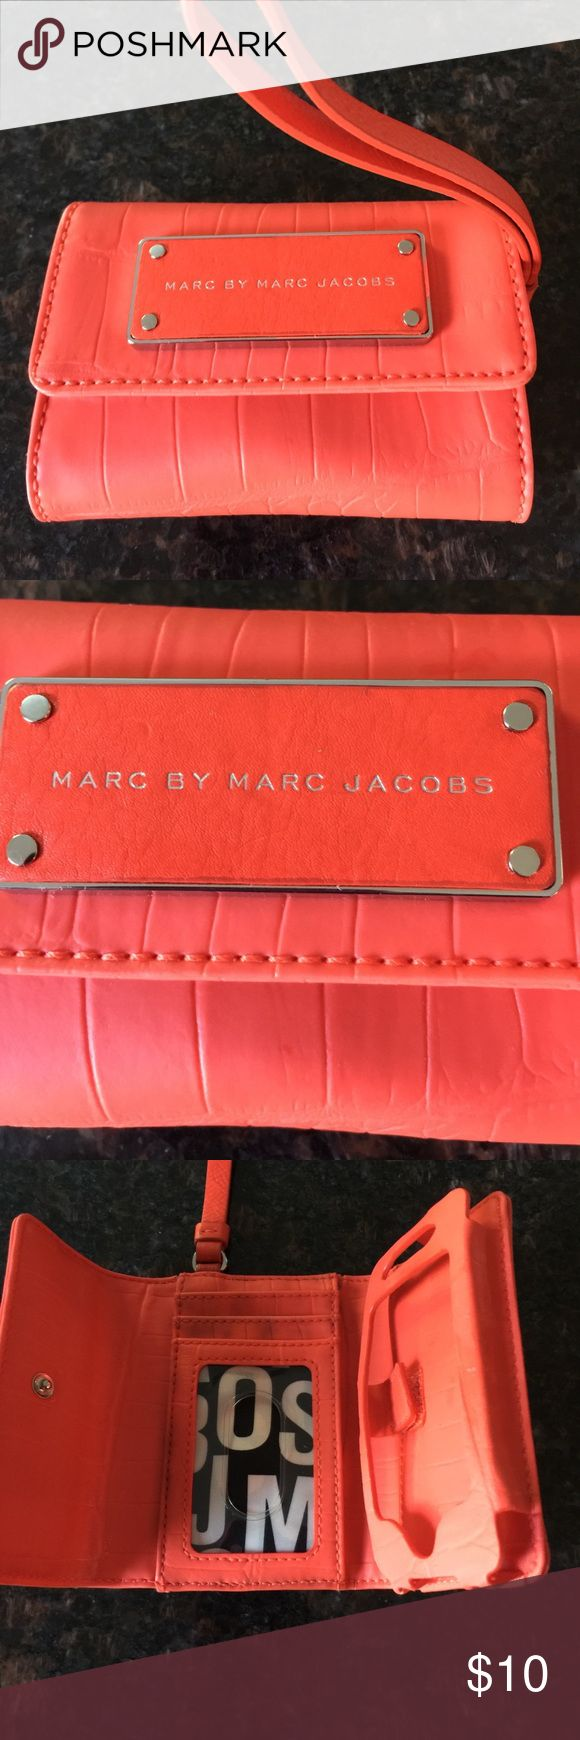 """Marc by Marc Jacobs Orange Phone Wristlet Marc by Marc Jacobs Cell Phone Orange Wristlet, vinyl body with leather strap, some wear on credit card sleeve, and at bottom of c 2 qphone holder show in pictures, snap closer, for smaller phones, 2 1/2""""  x 4 5/8"""". Marc by Marc Jacobs Bags Clutches & Wristlets"""